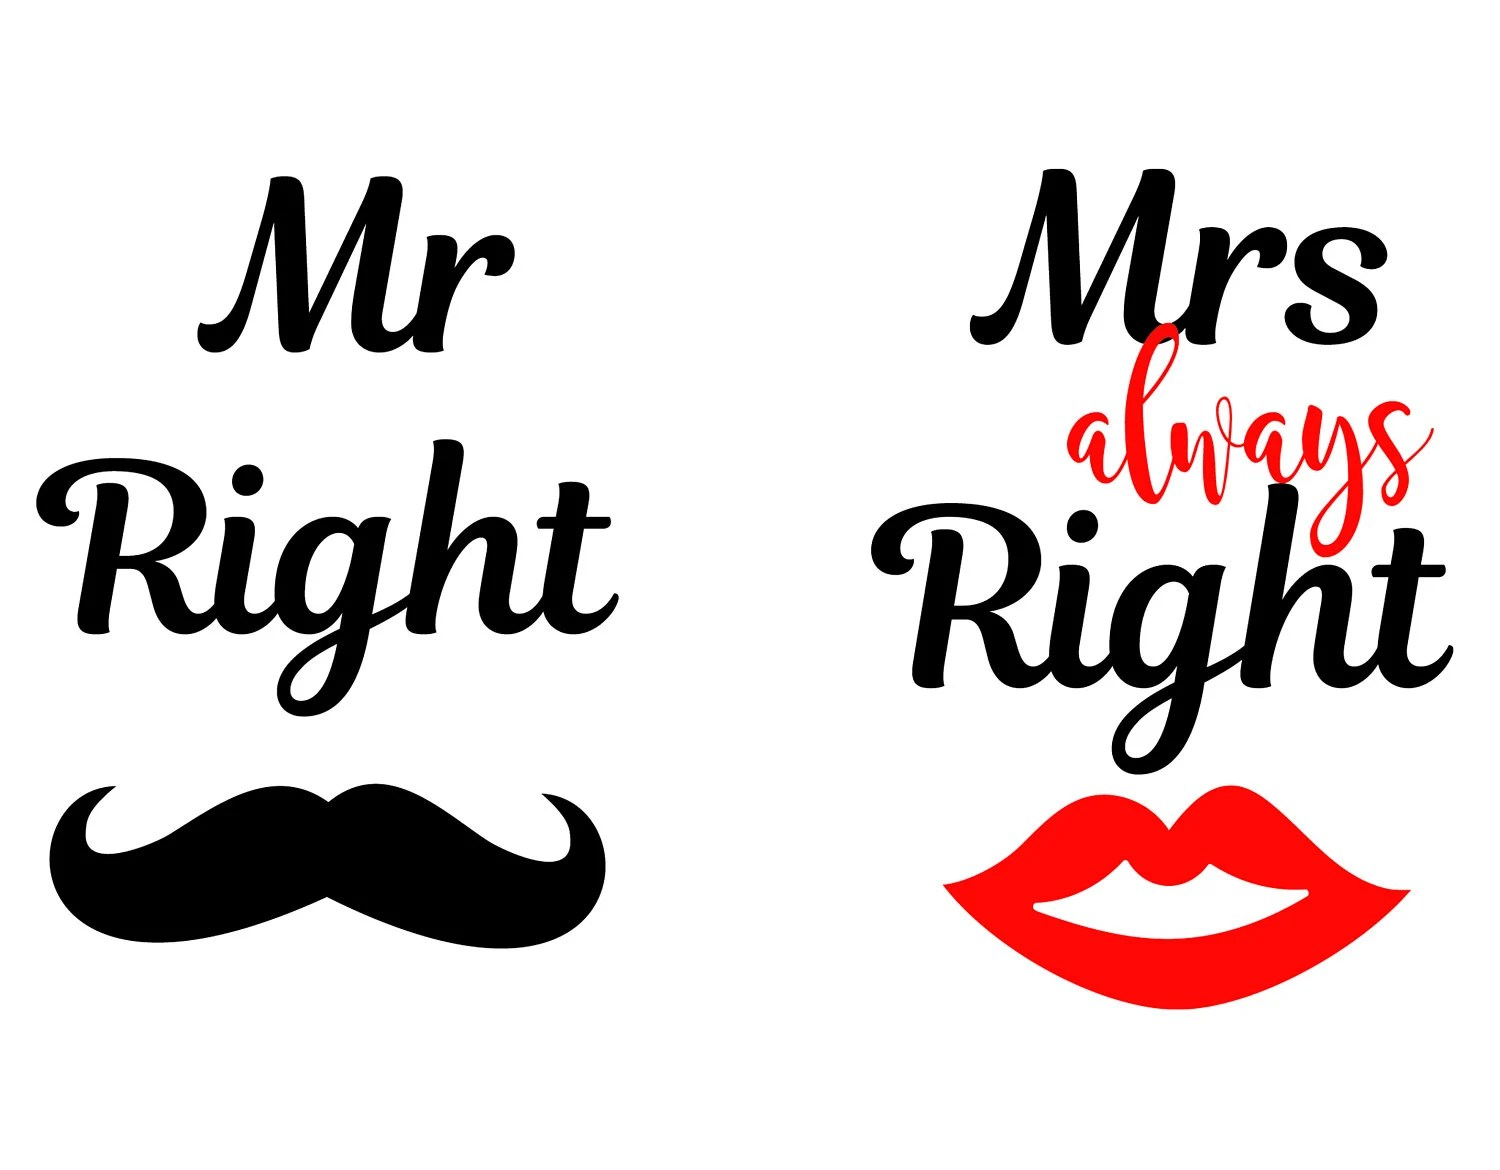 Bettwäsche Mrs Always Right Mr Right Svg Mrs Always Right Svg Eps Dxf Png Mr And